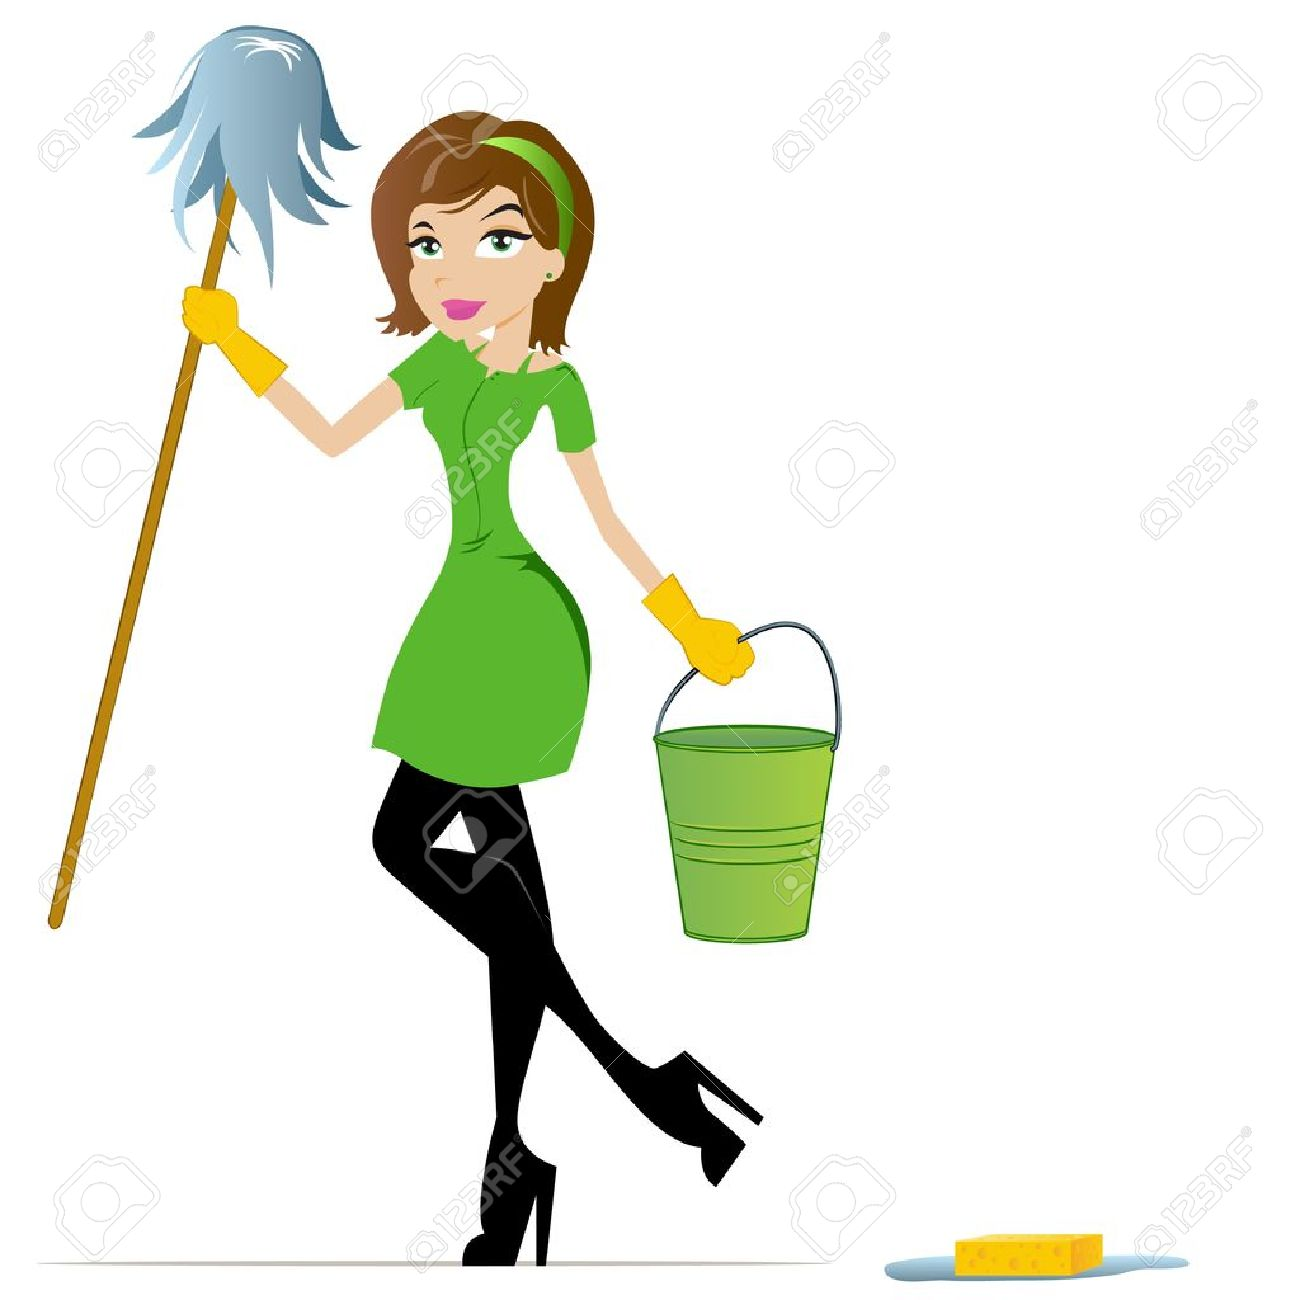 Cleaning Woman with Mop and Bucket - 15300438